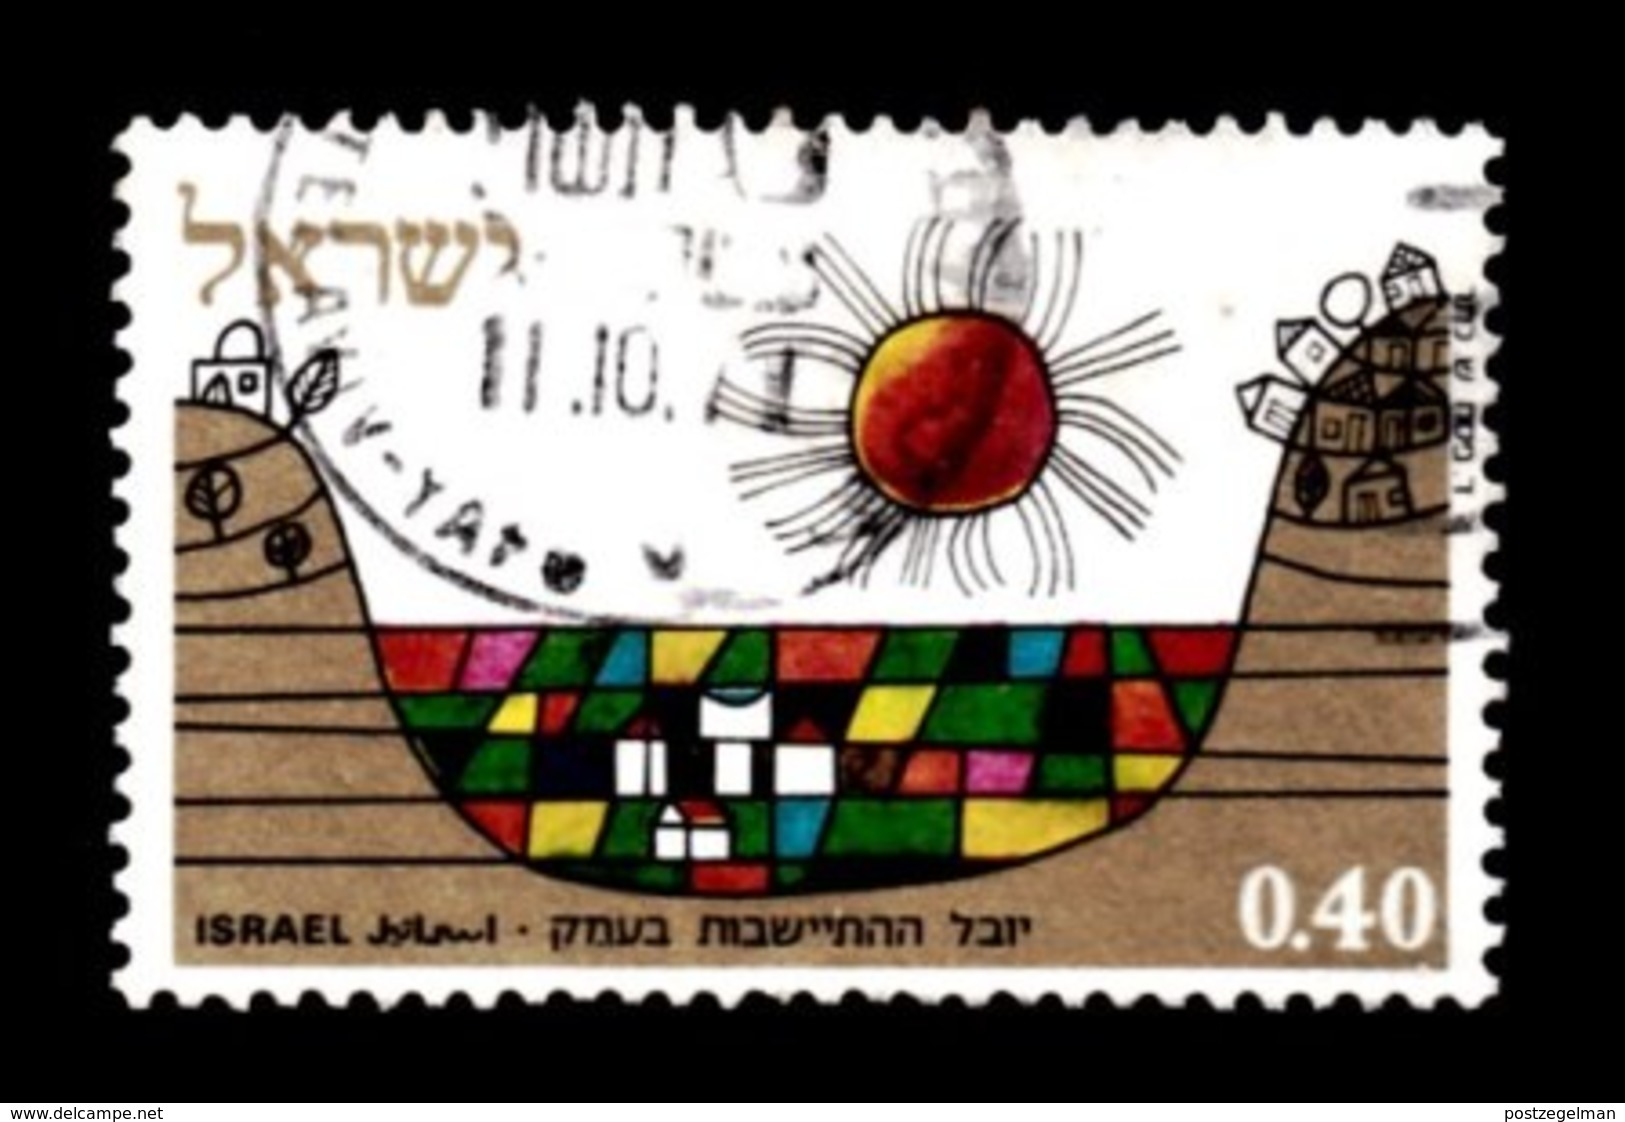 ISRAEL, 1971, Used Stamp(s), Without Tab, Emeq Settlement, SG Number 487, Scan Number 17420 - Israel